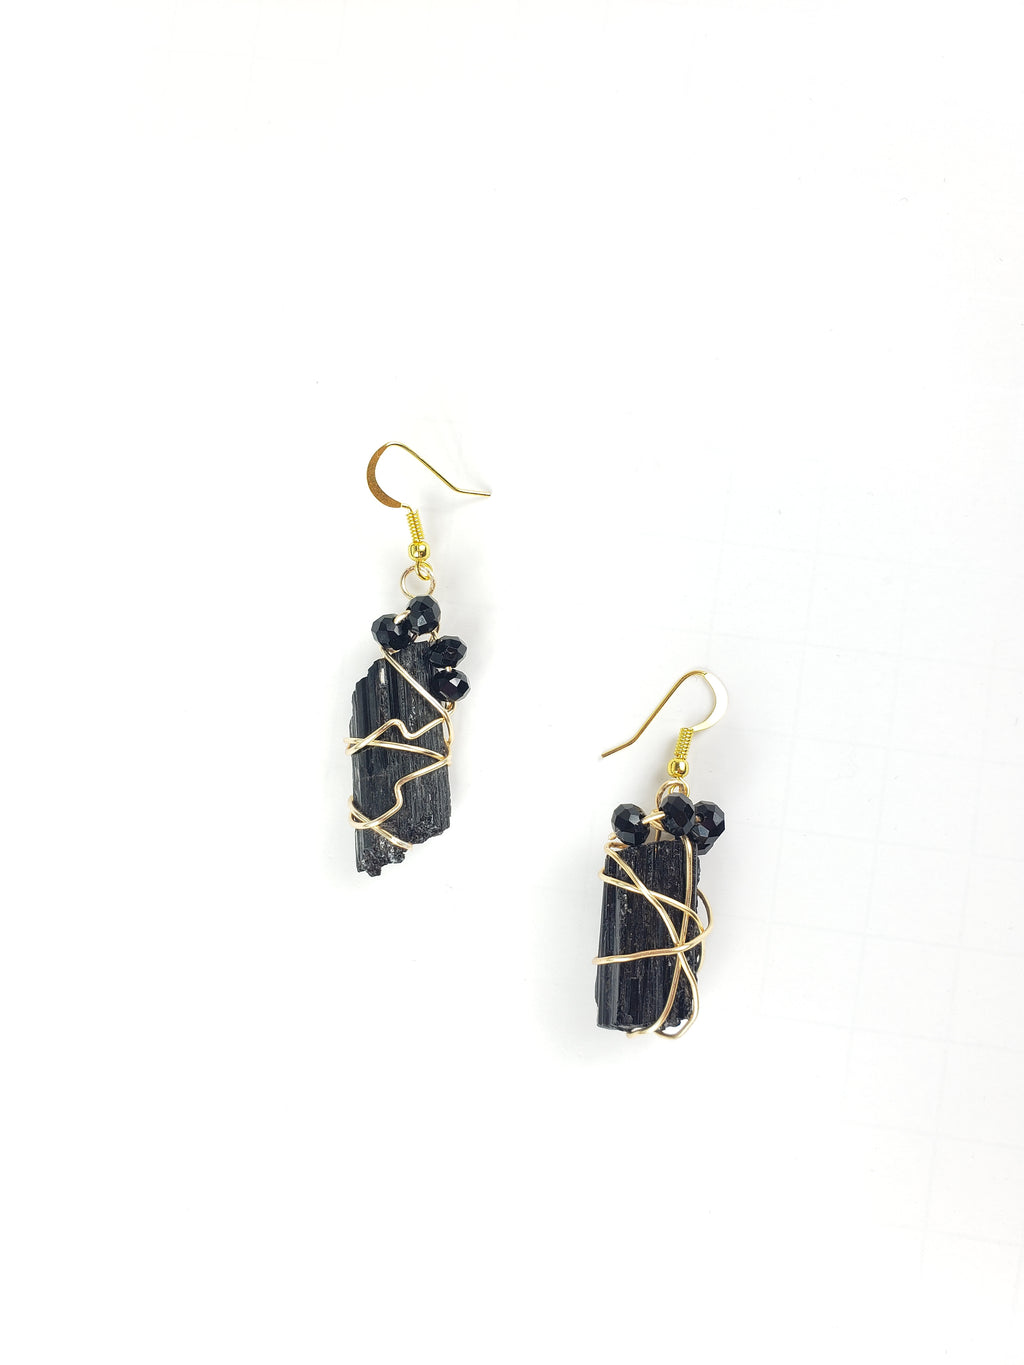 Wire Wrapped Black Tourmaline earrings, one of a kind crystal jewelry